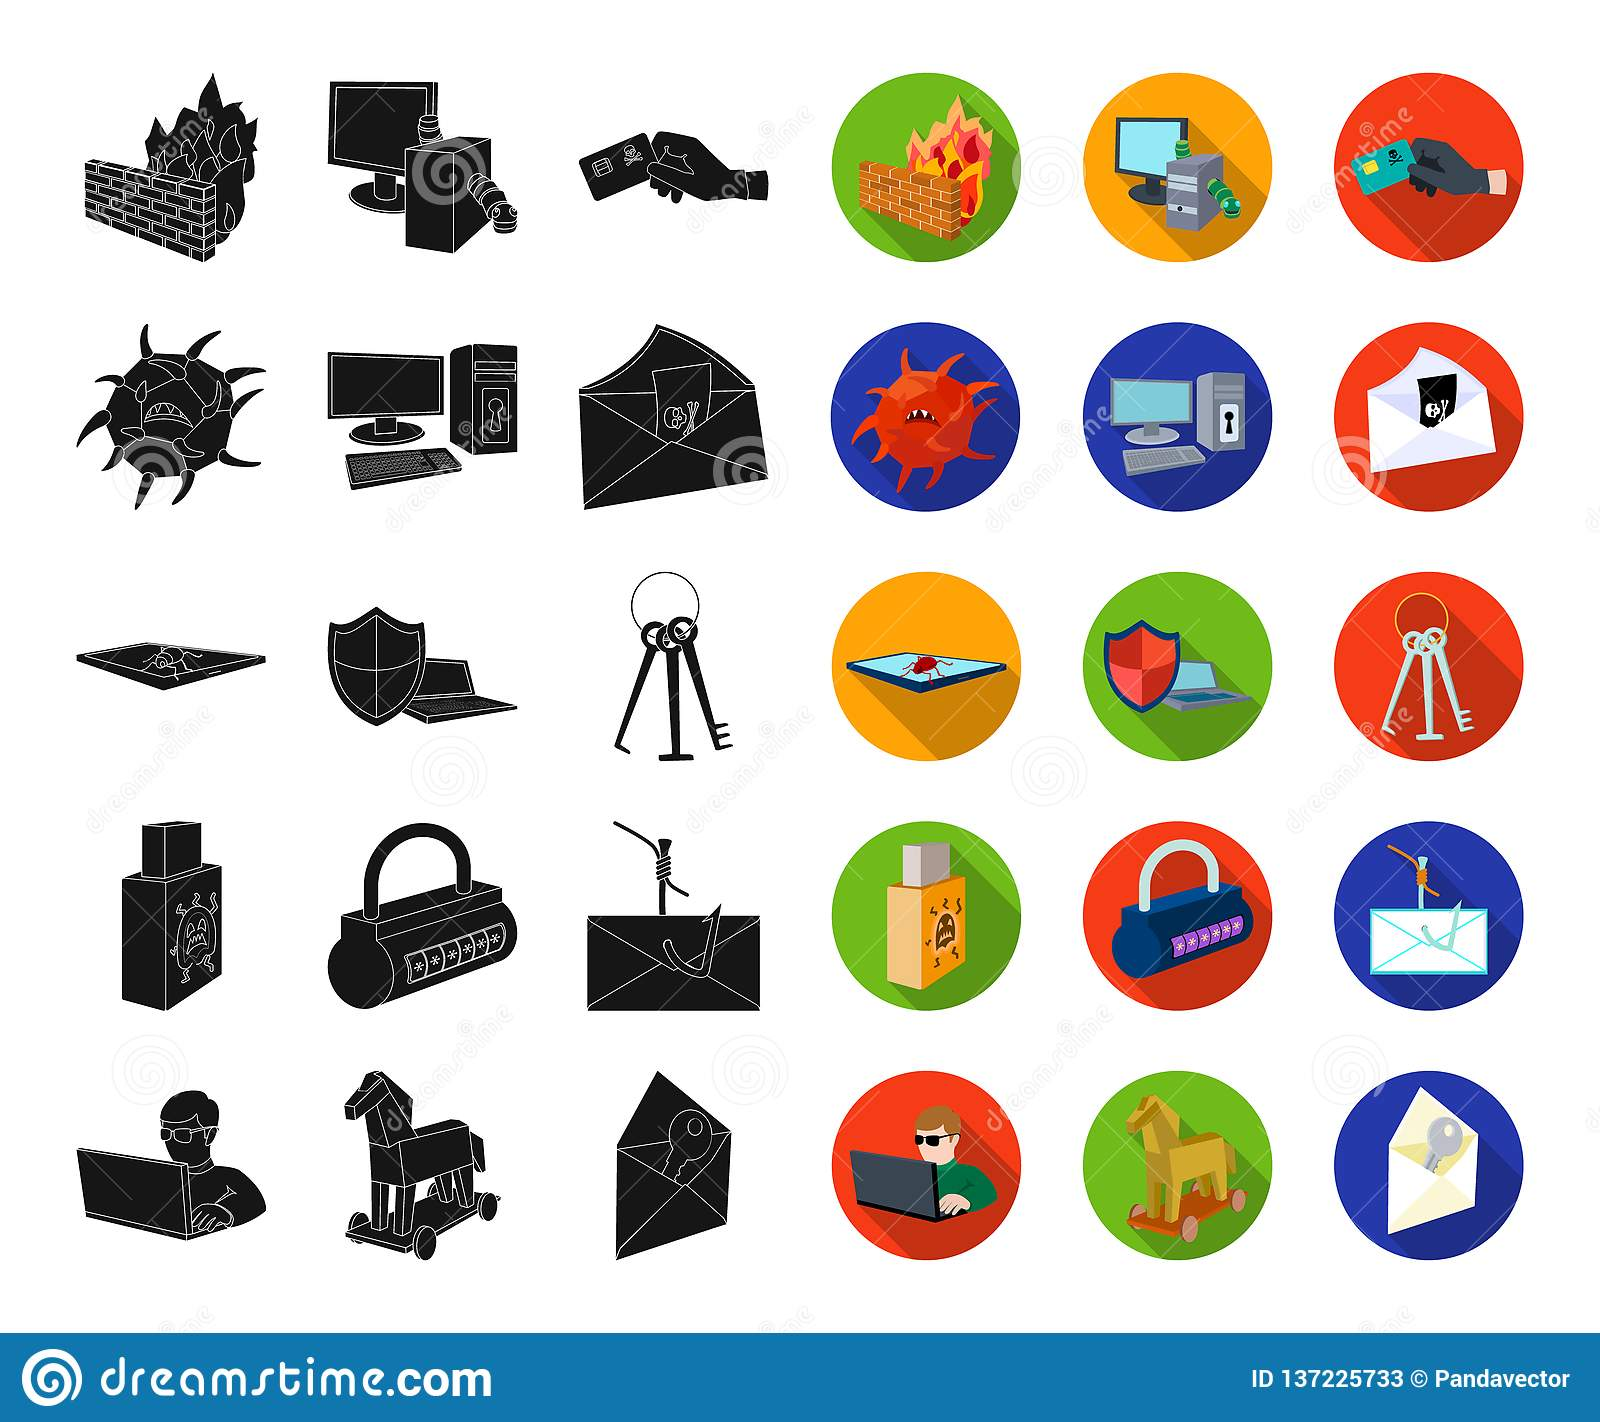 Hacker and hacking black,flat icons in set collection for design. Hacker and equipment vector symbol stock web